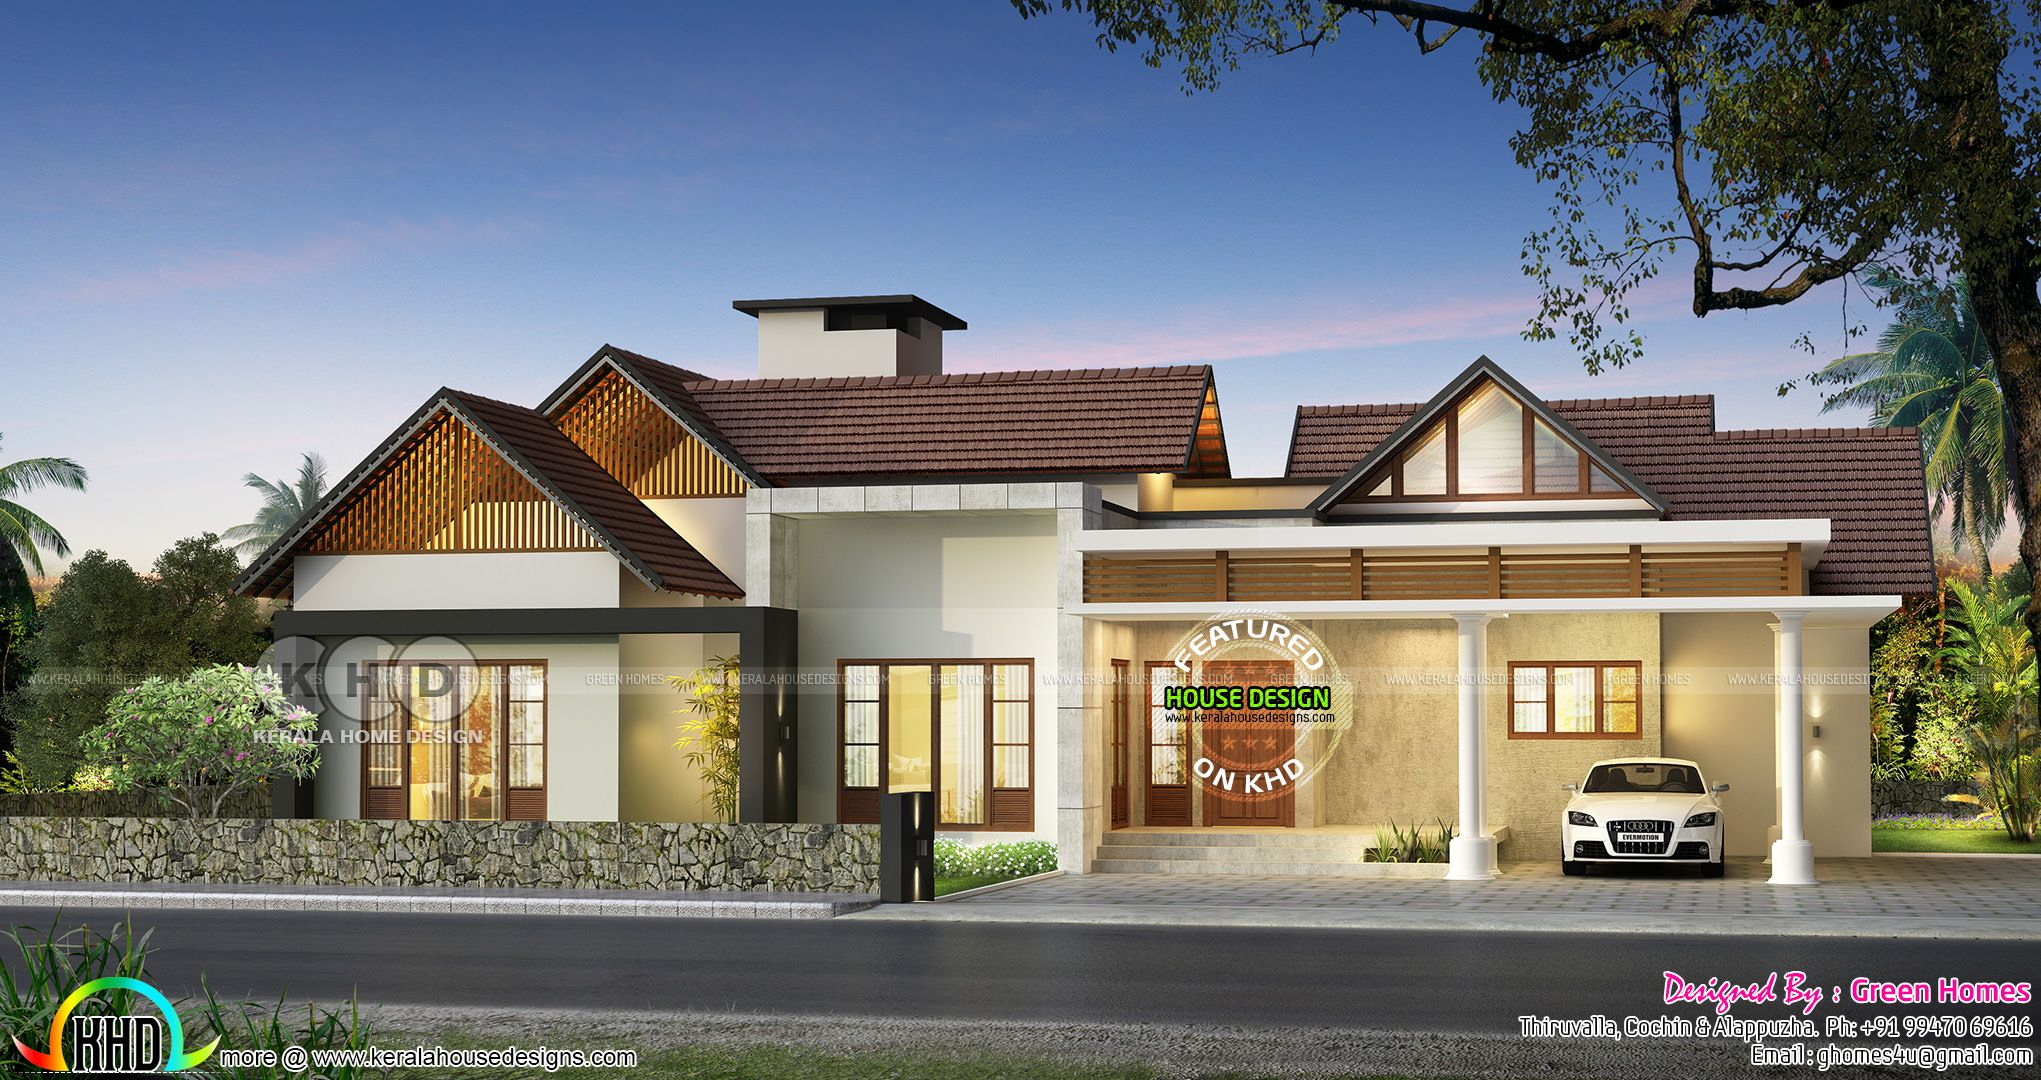 Big Single Floor House In Sloped Roof Style Single Floor House Design House Roof Kerala House Design